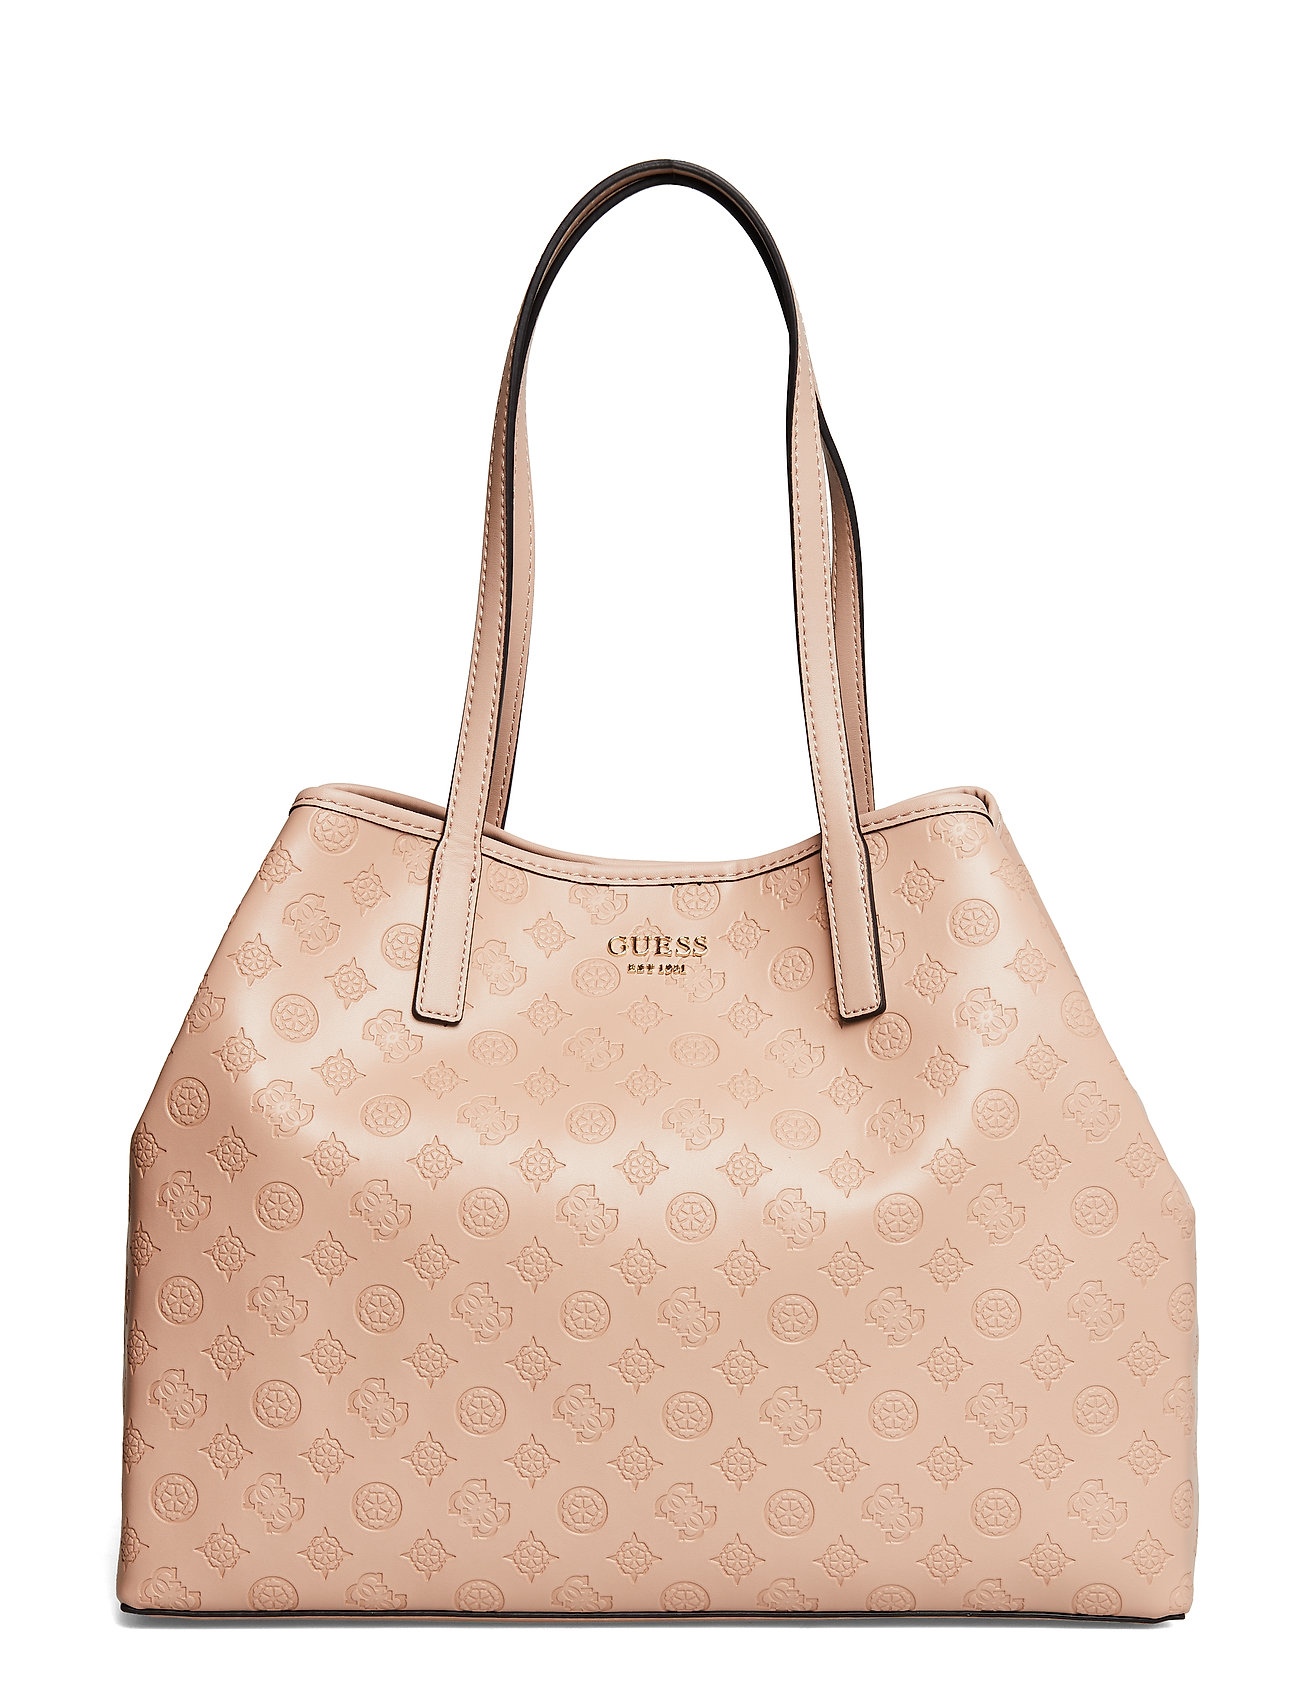 GUESS Vikky Large Tote Bags Shoppers Fashion Shoppers Beige GUESS